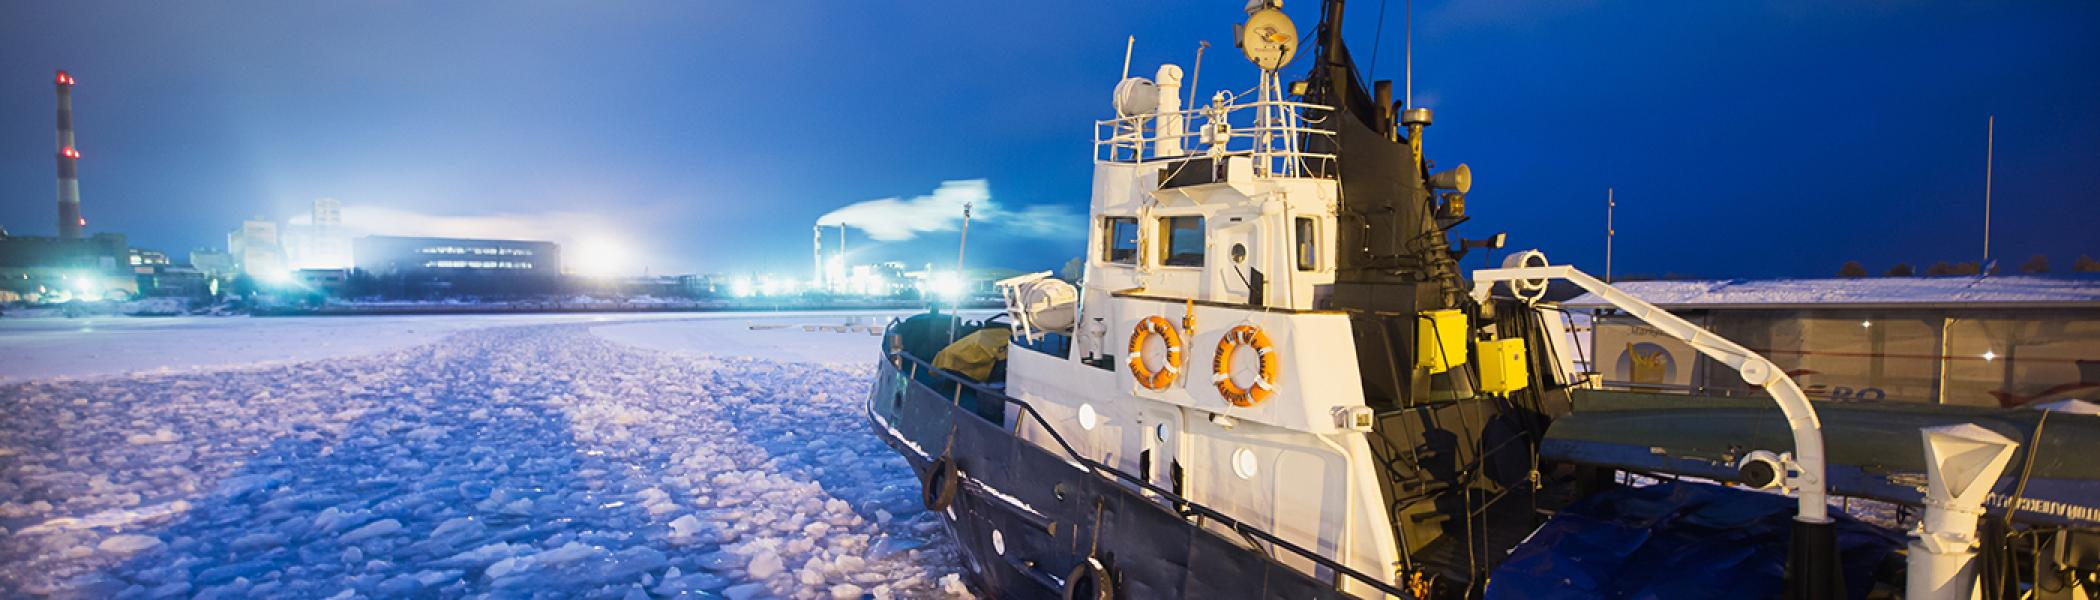 Icebreaking ship in the North Pole in the evening lights